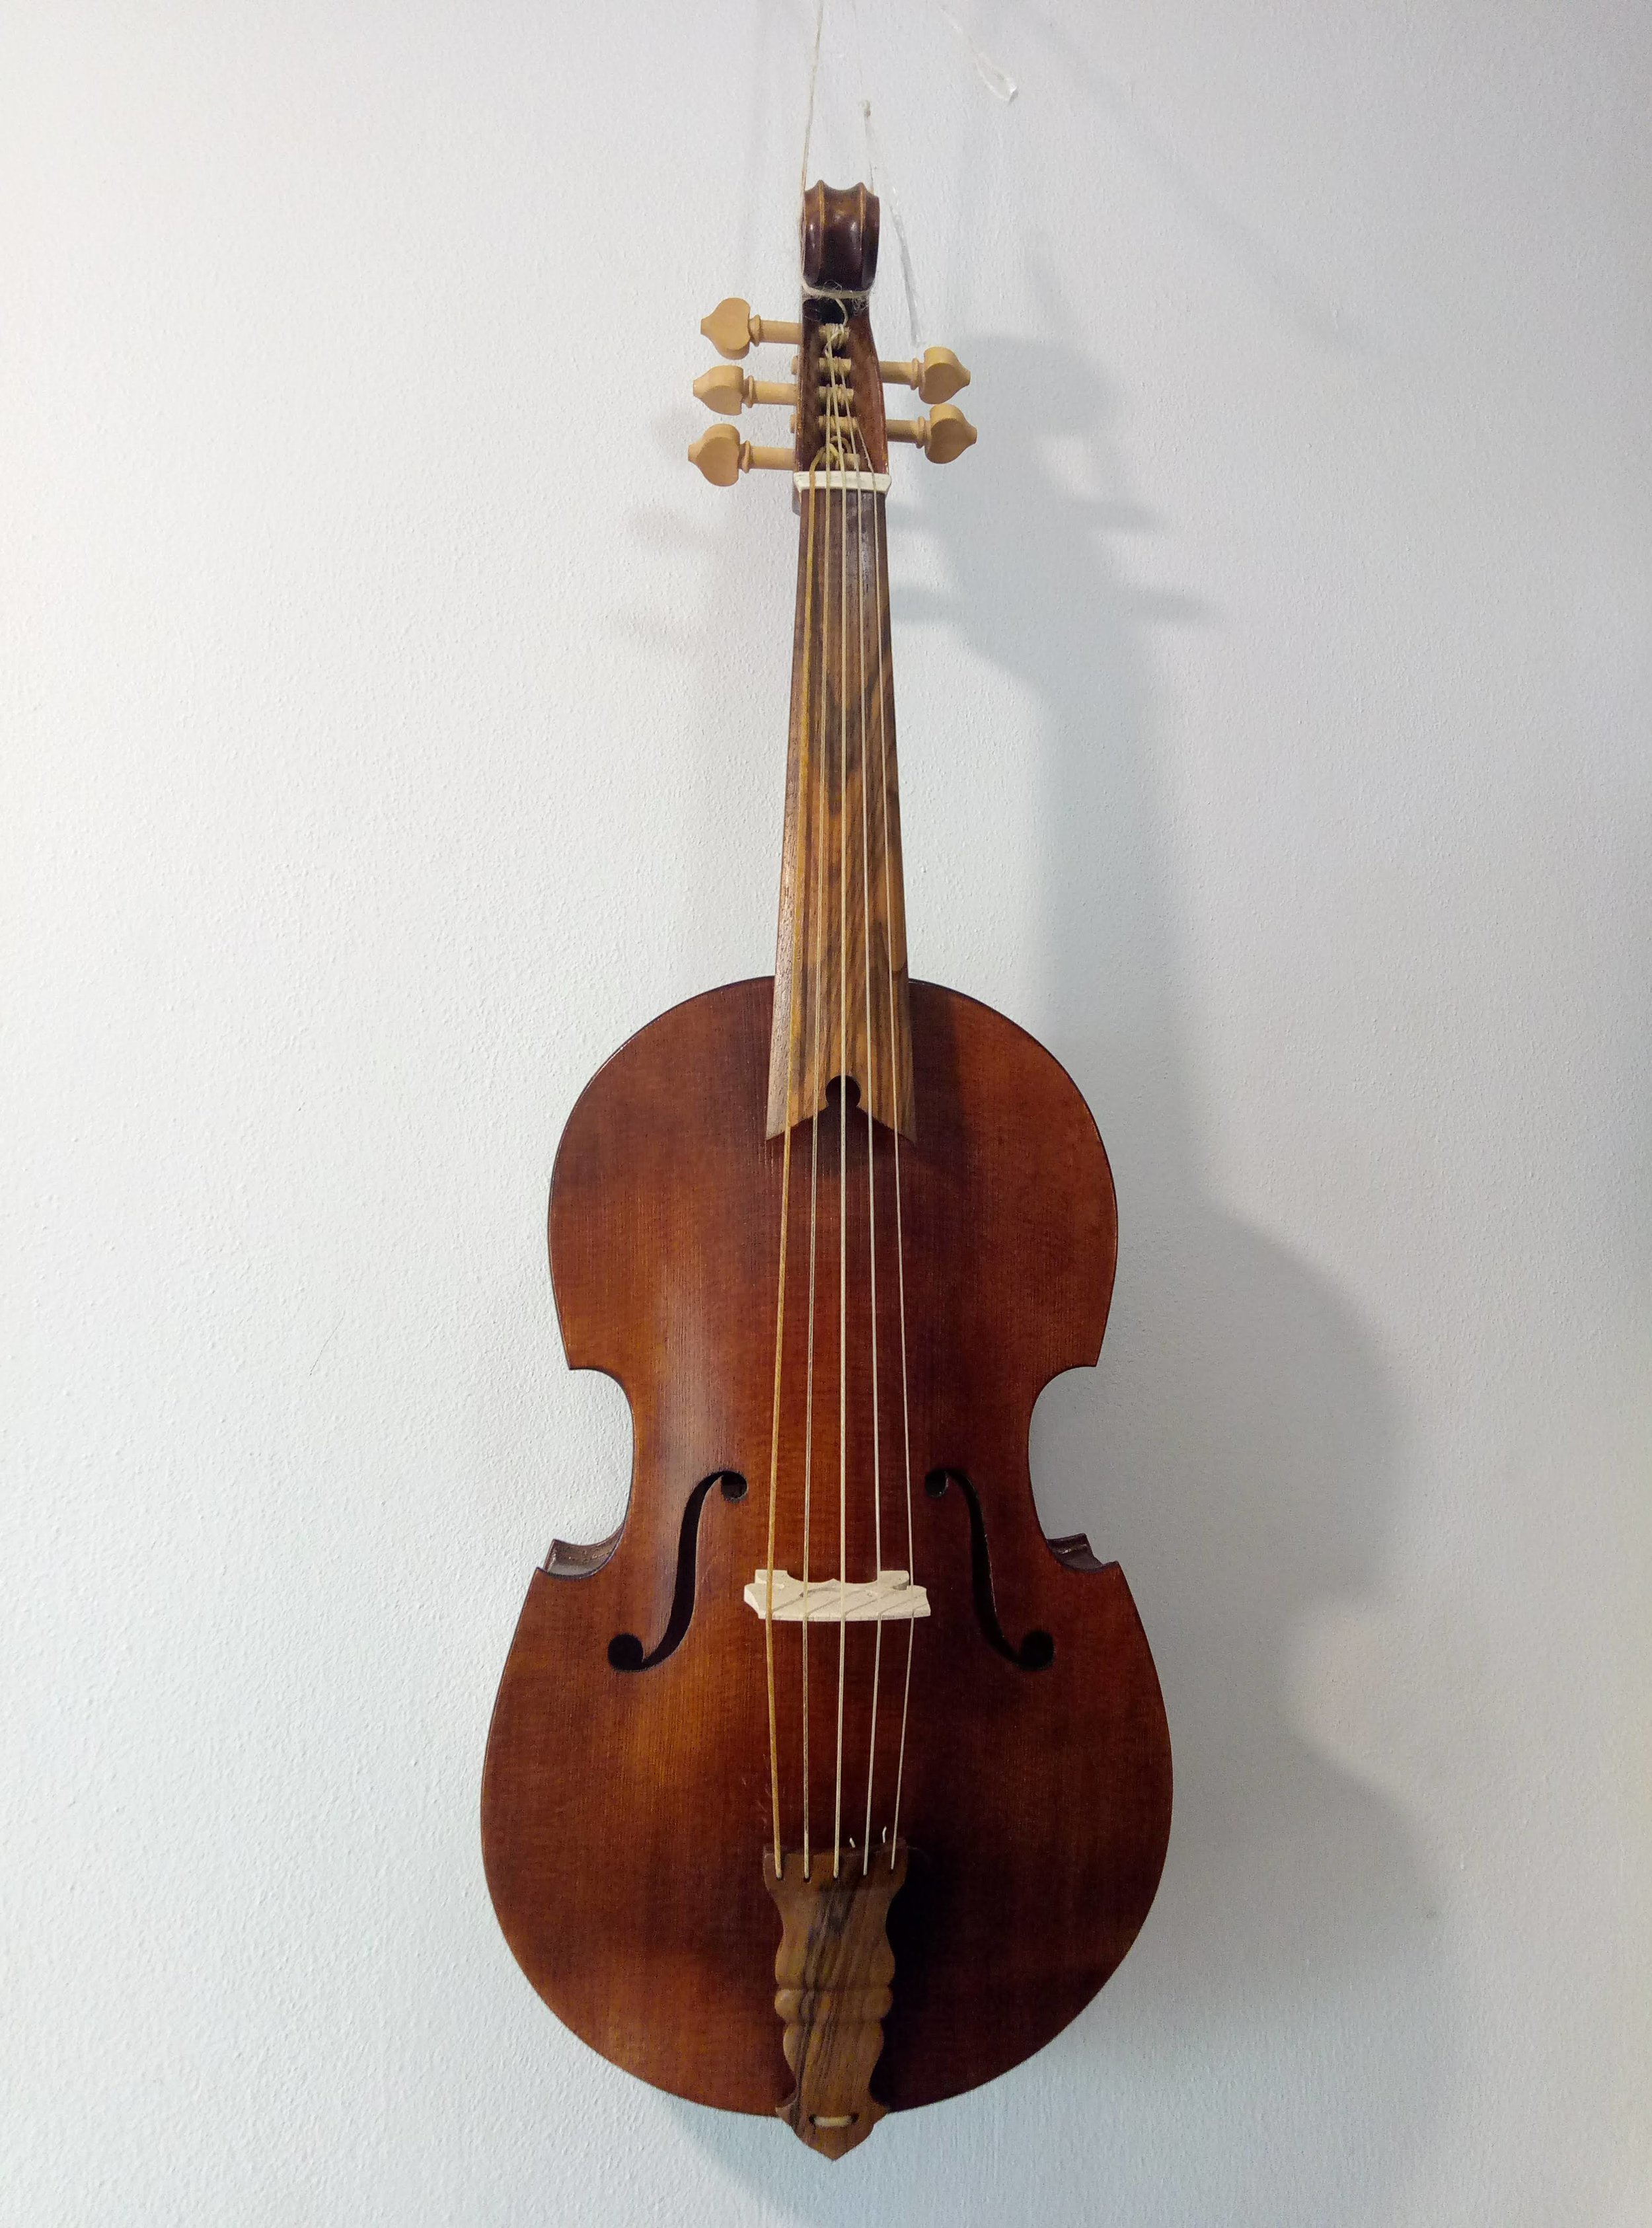 Anonyomous Master of Brescia Viola  39cm string length Can also be set up as a treble viol  €1800 plus strings